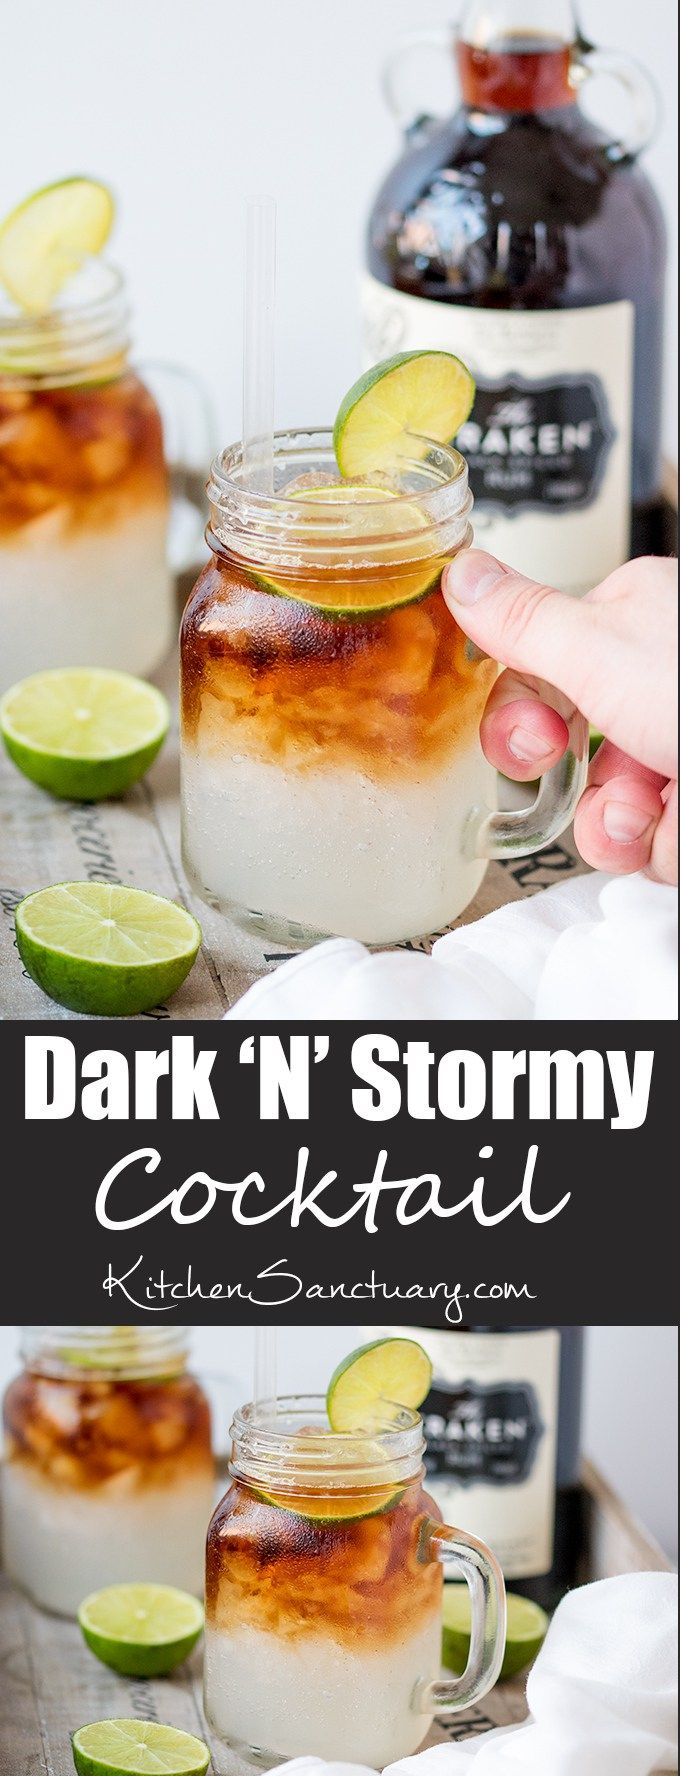 Dark 'N' Stormy - a delicious blend of spiced rum, ginger beer and lime - easy and delicious!